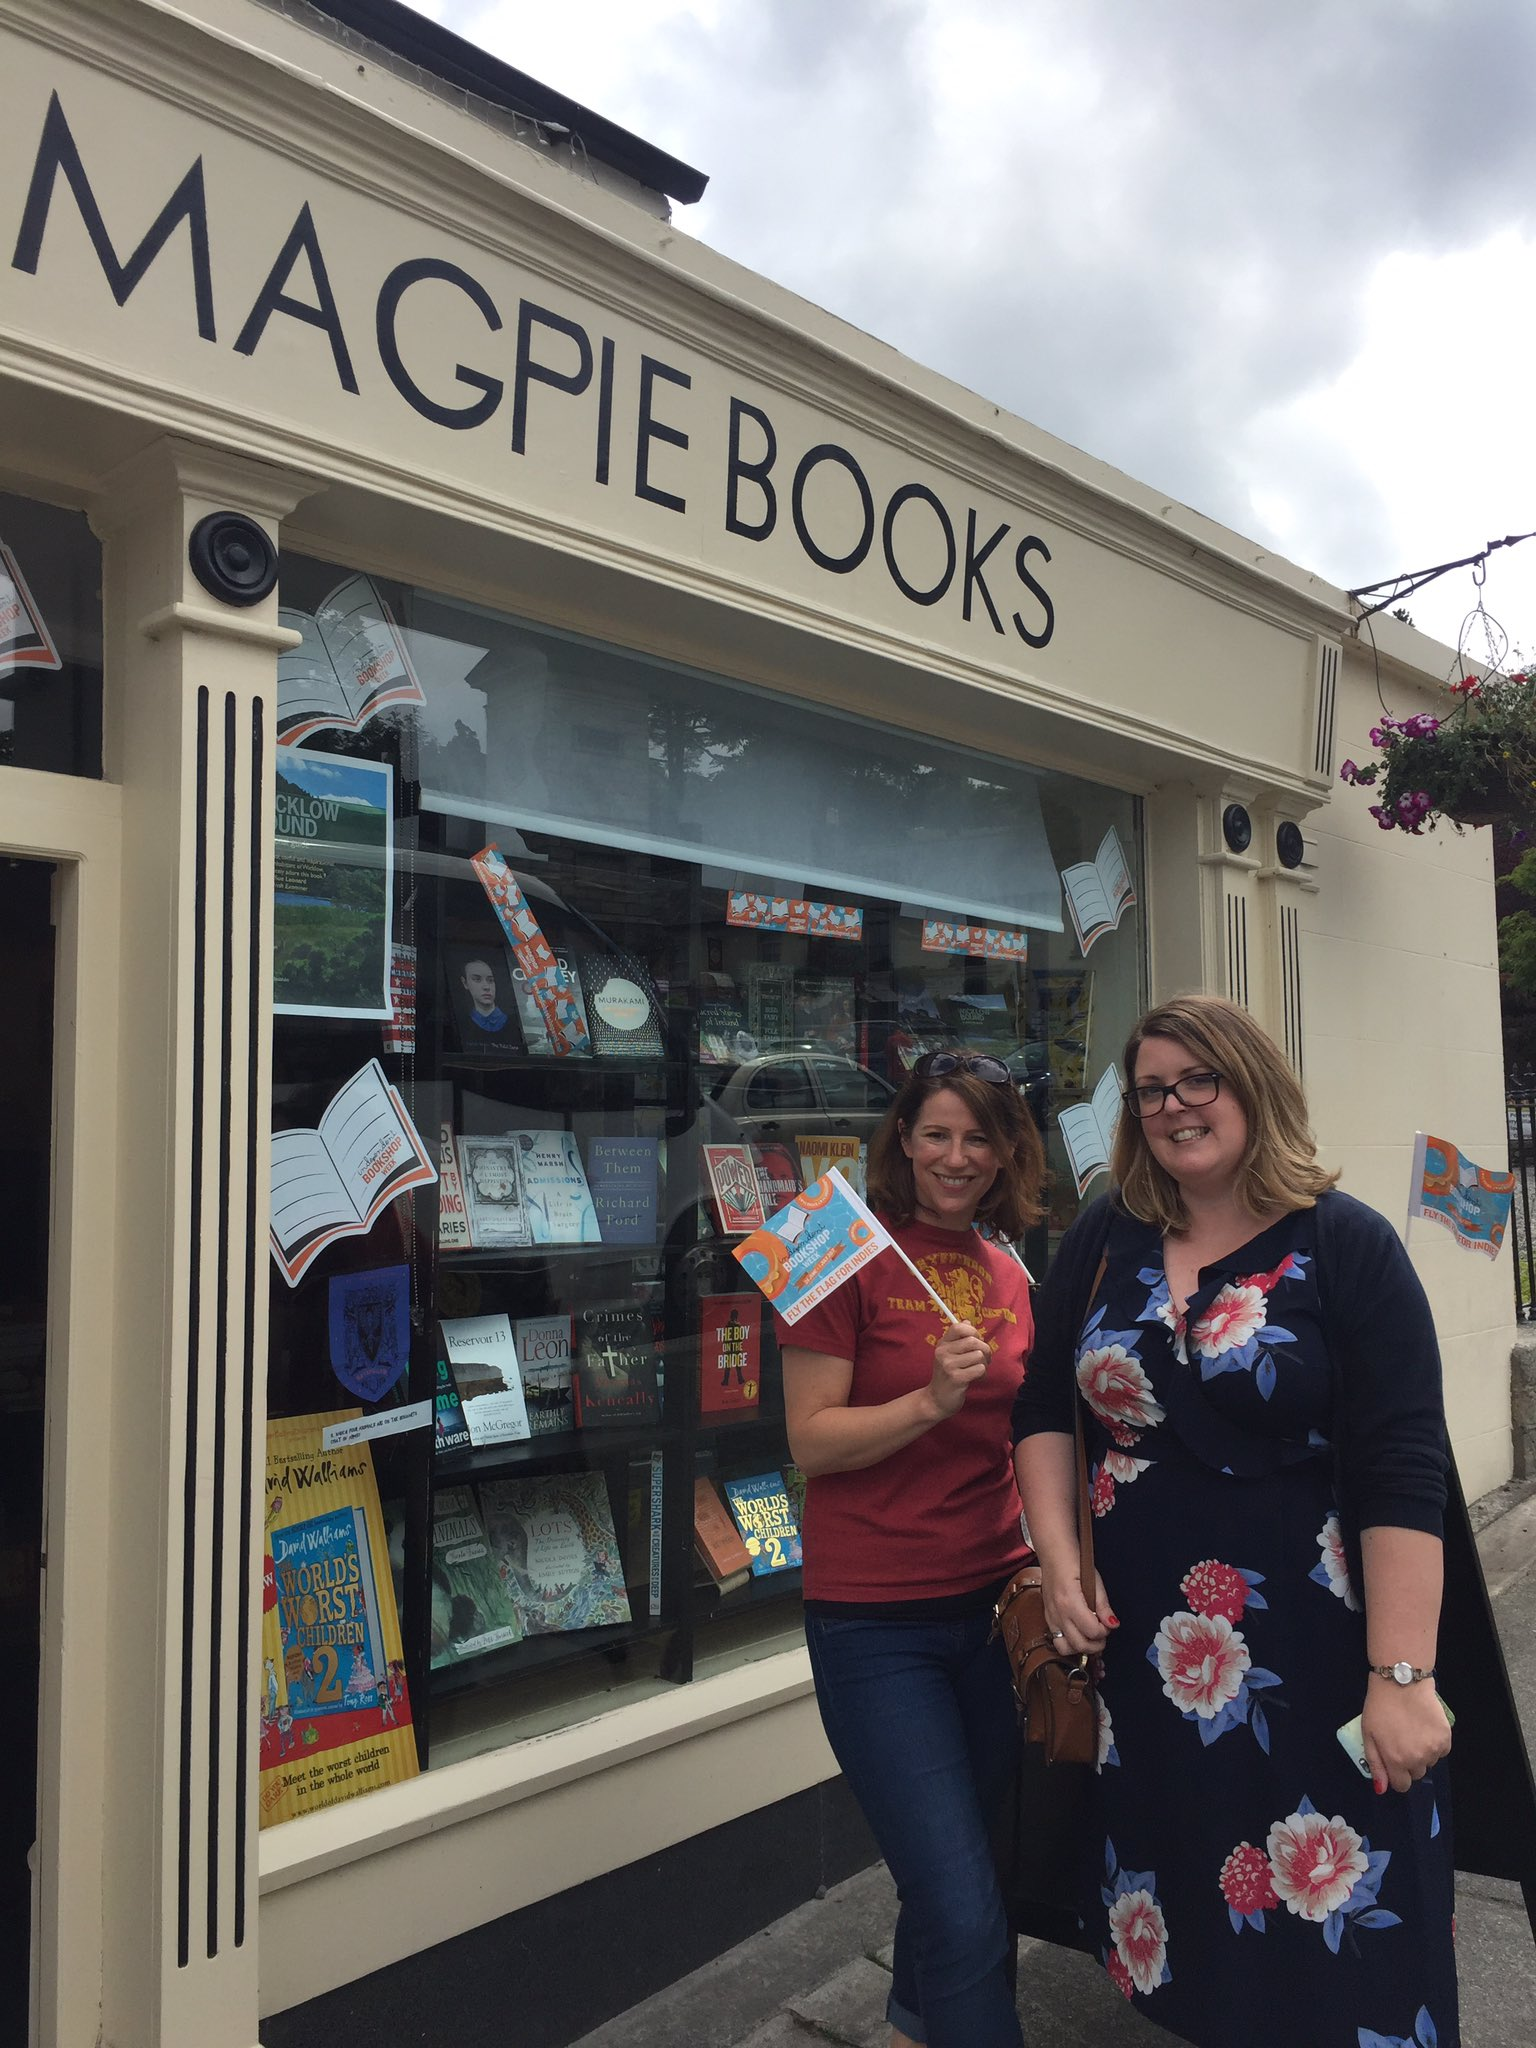 @HazelGaynor and @cathryanhoward also paid us a visit on their #bookshopcrawl They have their itinerary laminated! #IBW2017 #dedication https://t.co/gAV1JHAECK